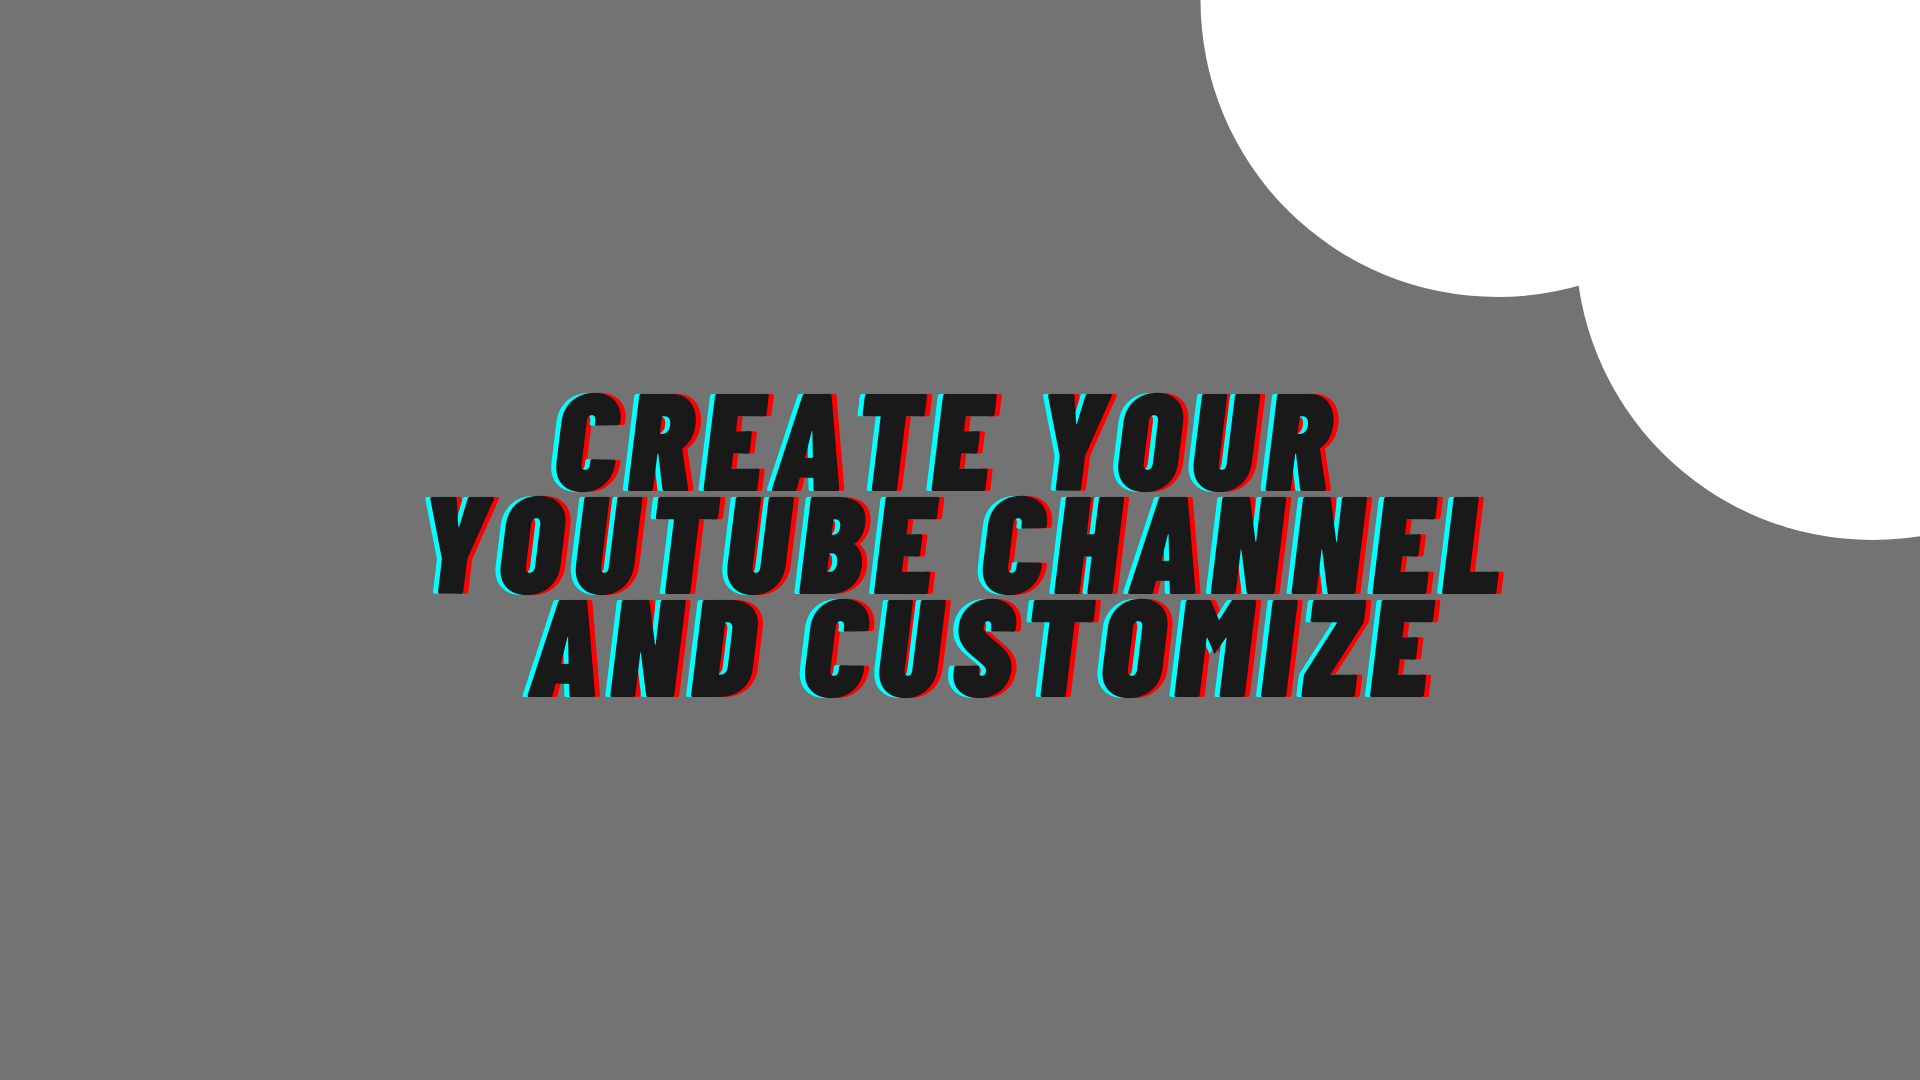 Channel Creation and Customization